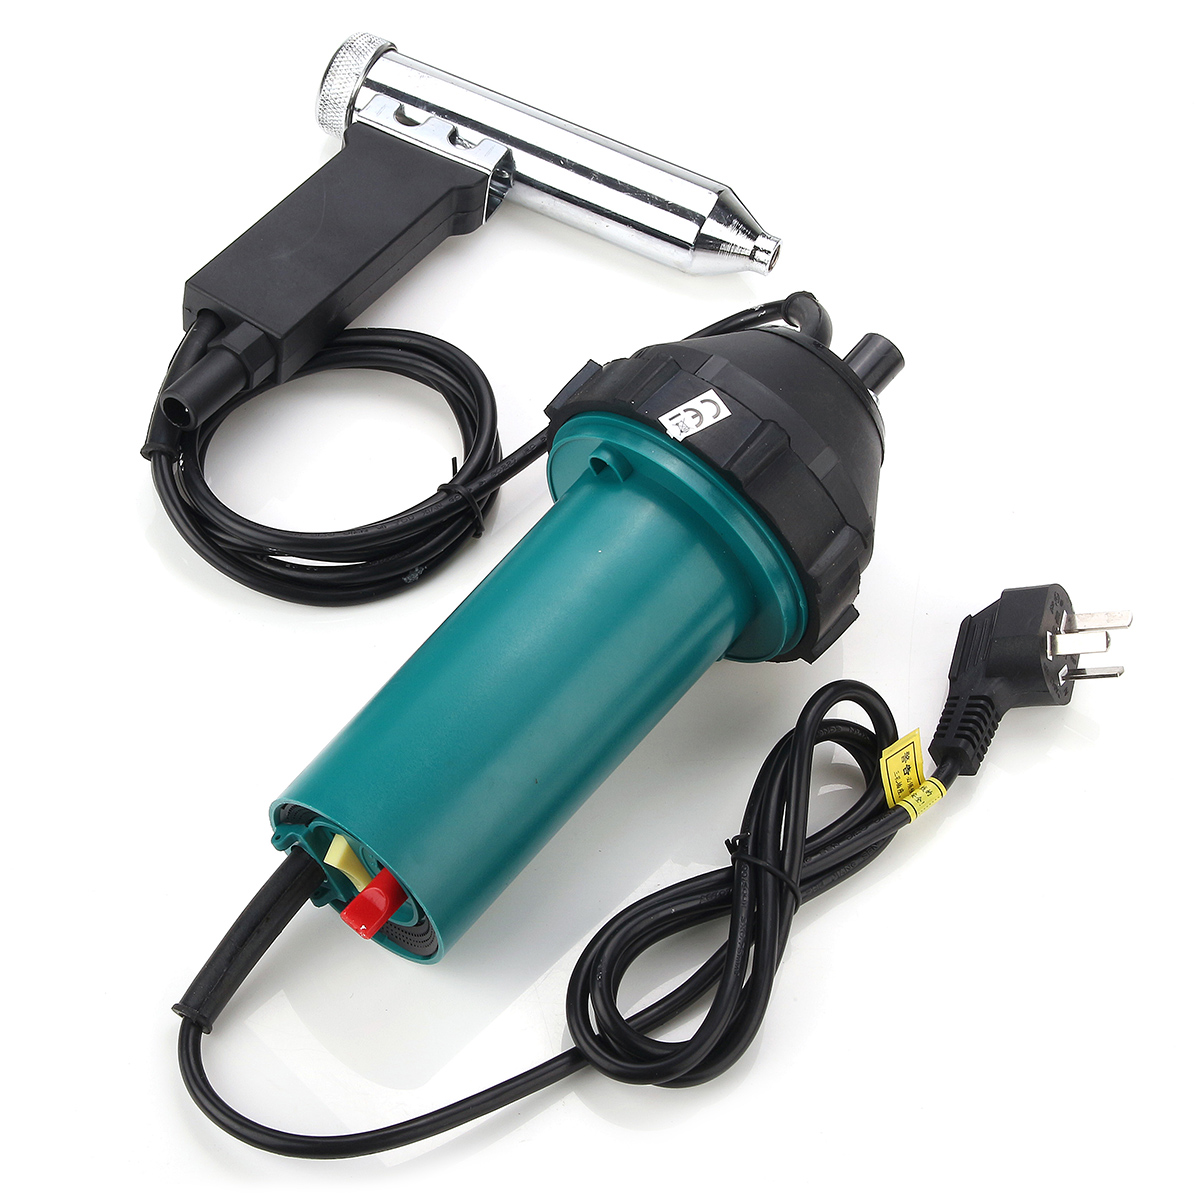 Jiguoor 1080W Plastic Hot Air Welding Plastic Welder Heat Gas Tool 2942PA 40degree-550degree цены